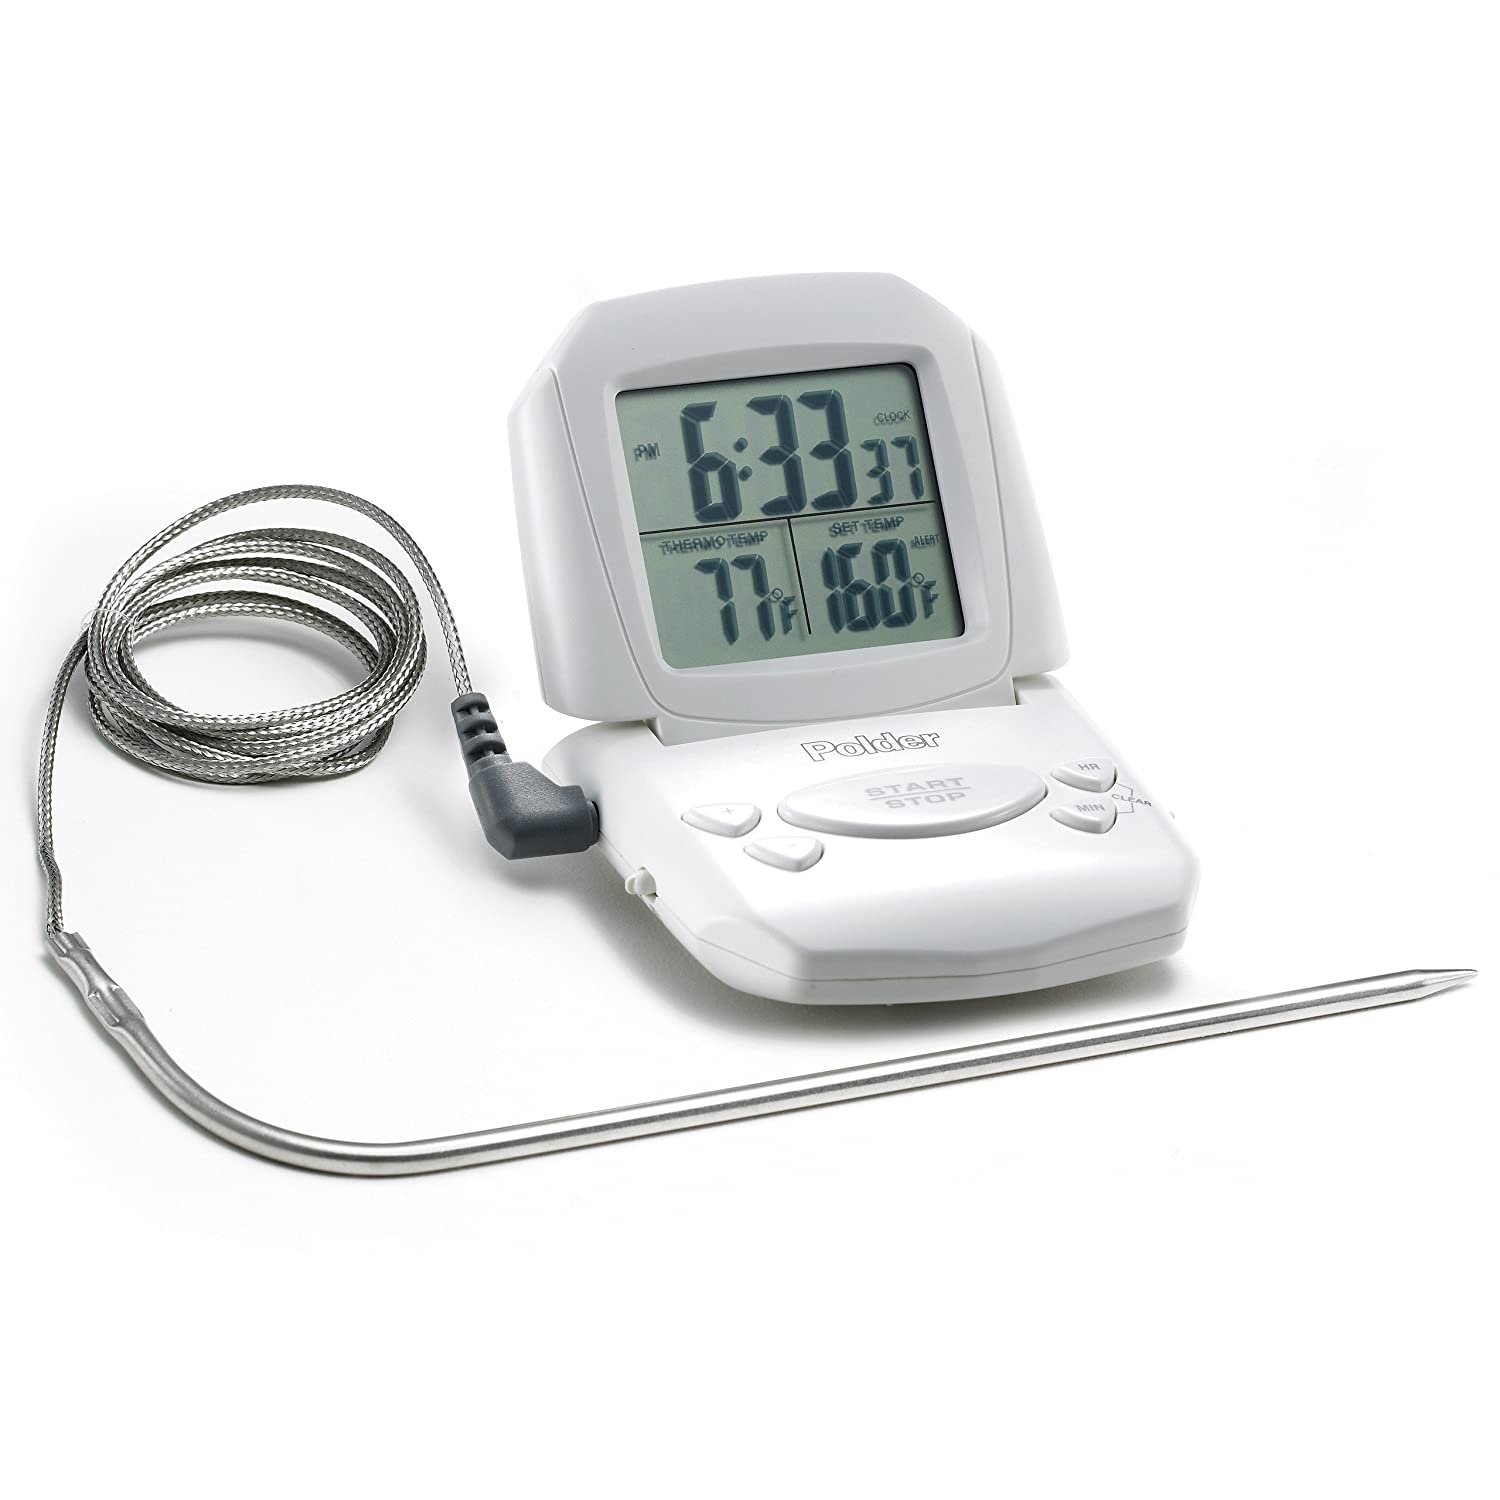 Polder 602-90 Digital Cooking Timer/Thermometer and Clock, White